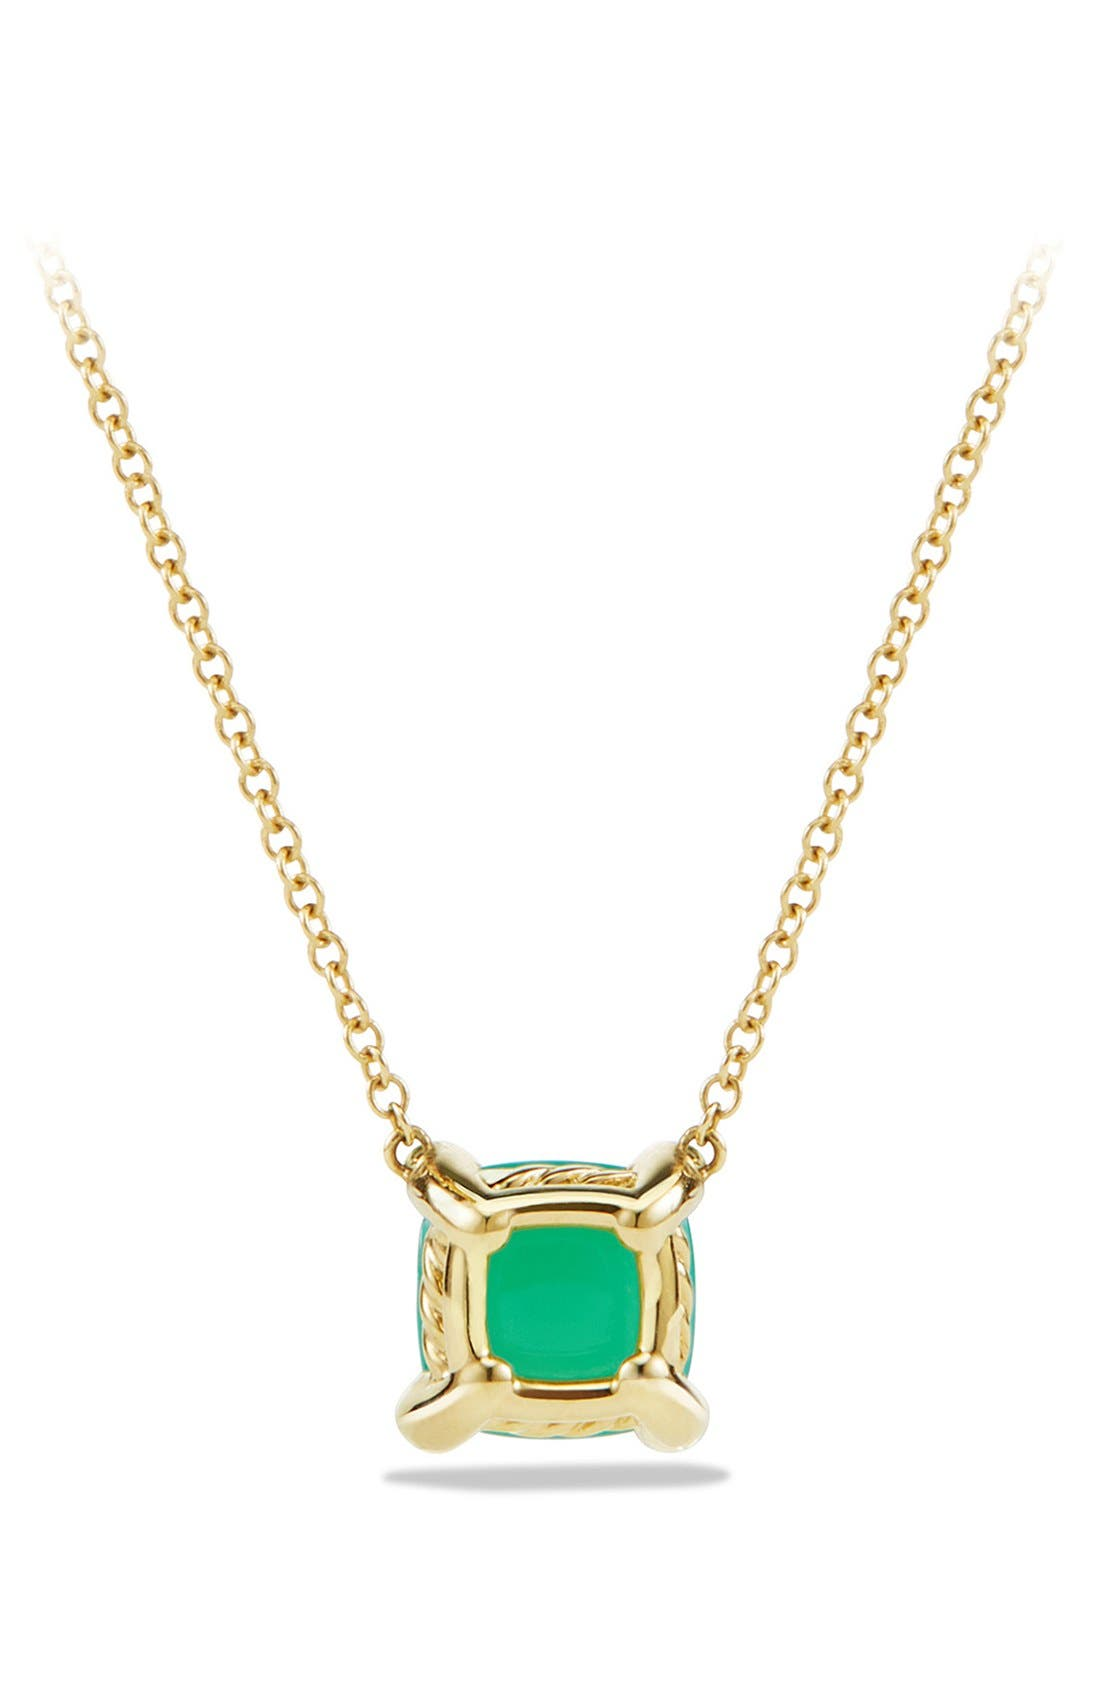 Alternate Image 3  - David Yurman 'Châtelaine' Pendant Necklace with Semiprecious Stone and Diamonds in 18K Gold